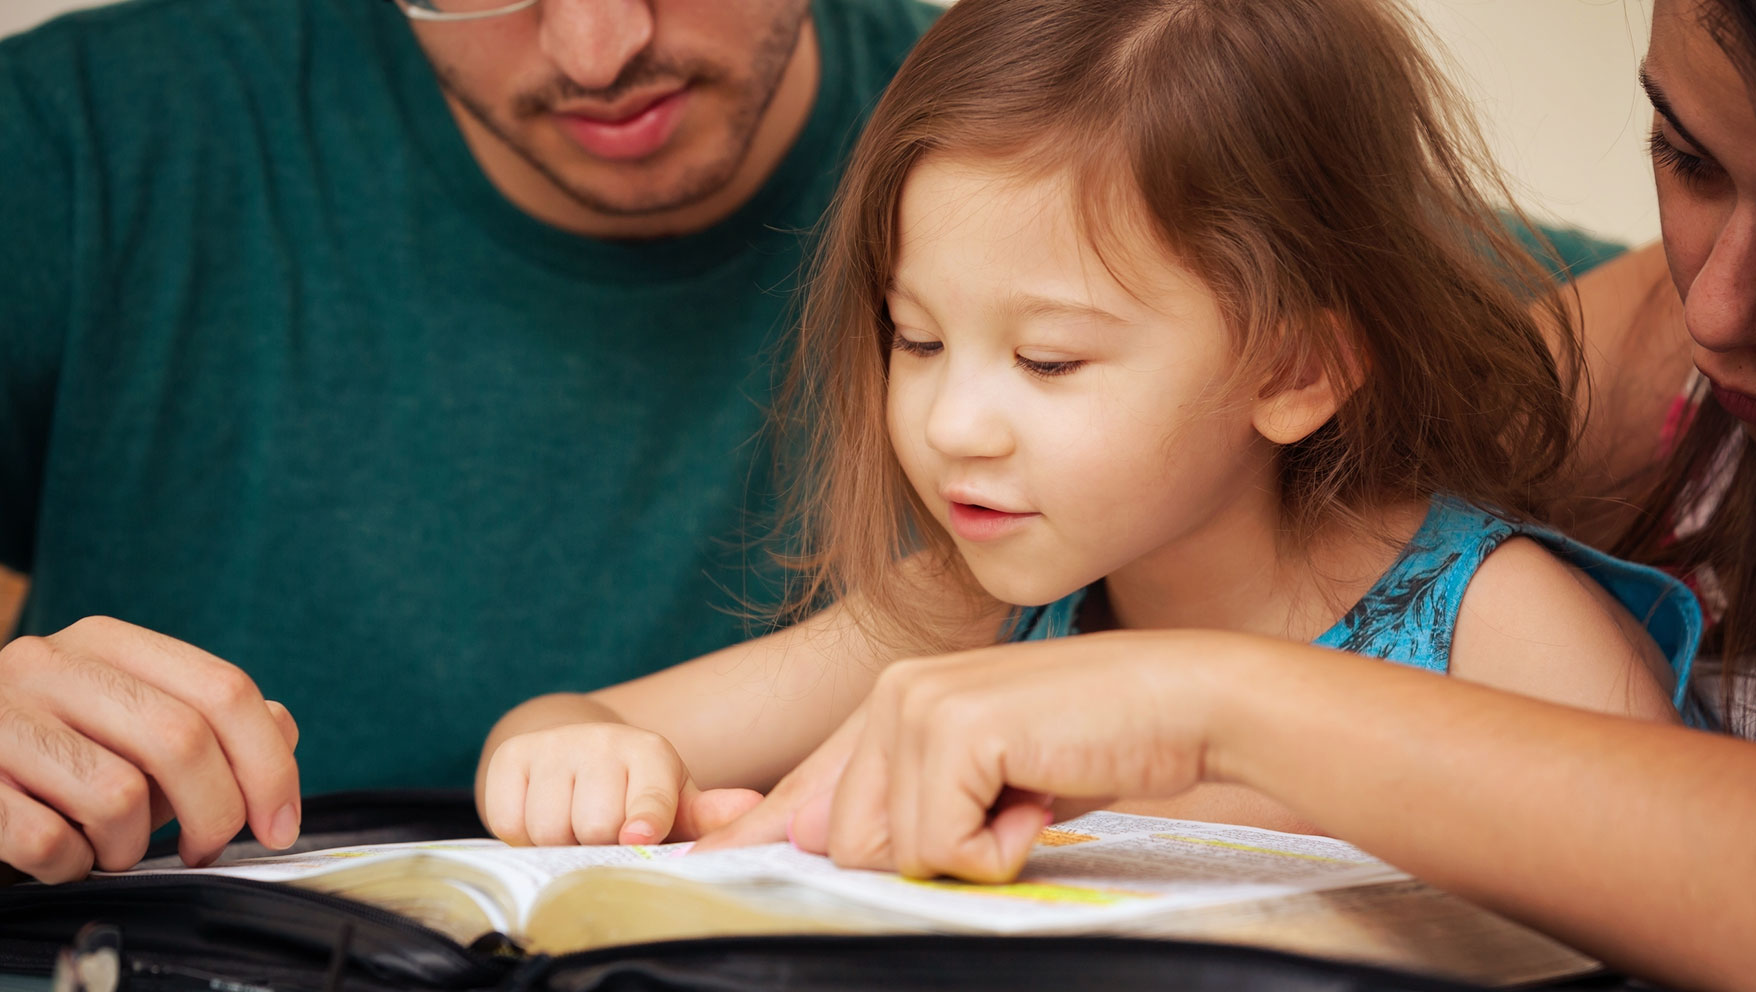 3 Bible Stories to Teach Your Kids about Humility